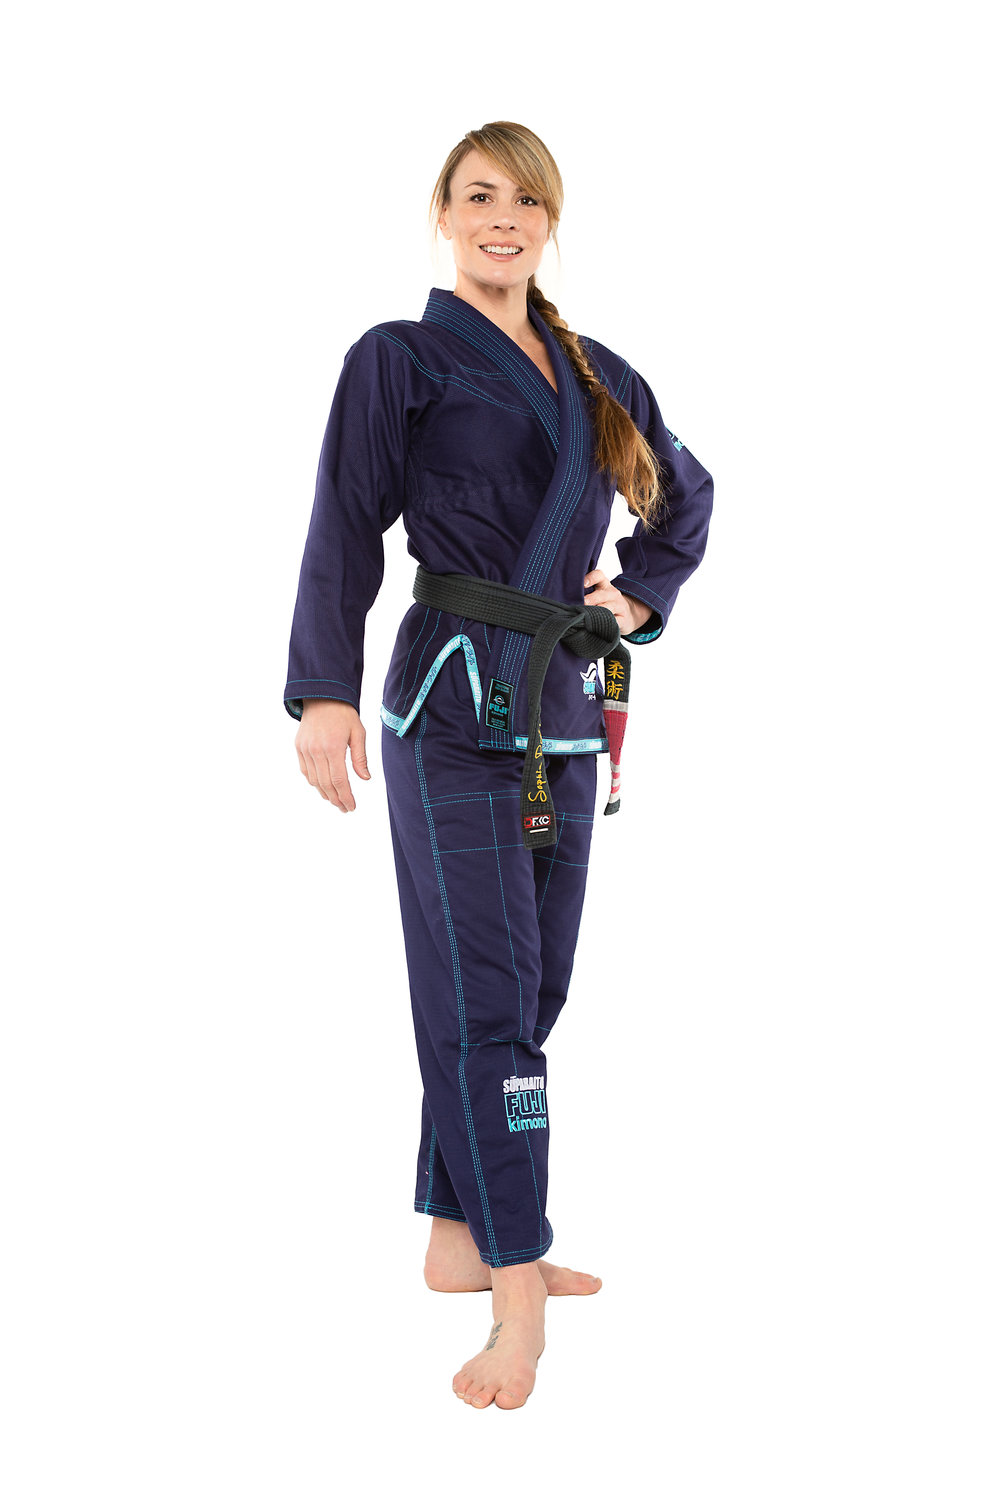 - Check out the beautiful new navy and teal Fuji Sports gis. The new Superato gi is a women's cut that fits perfectly.Message me for the VIP discount code. You can orders  here!!!